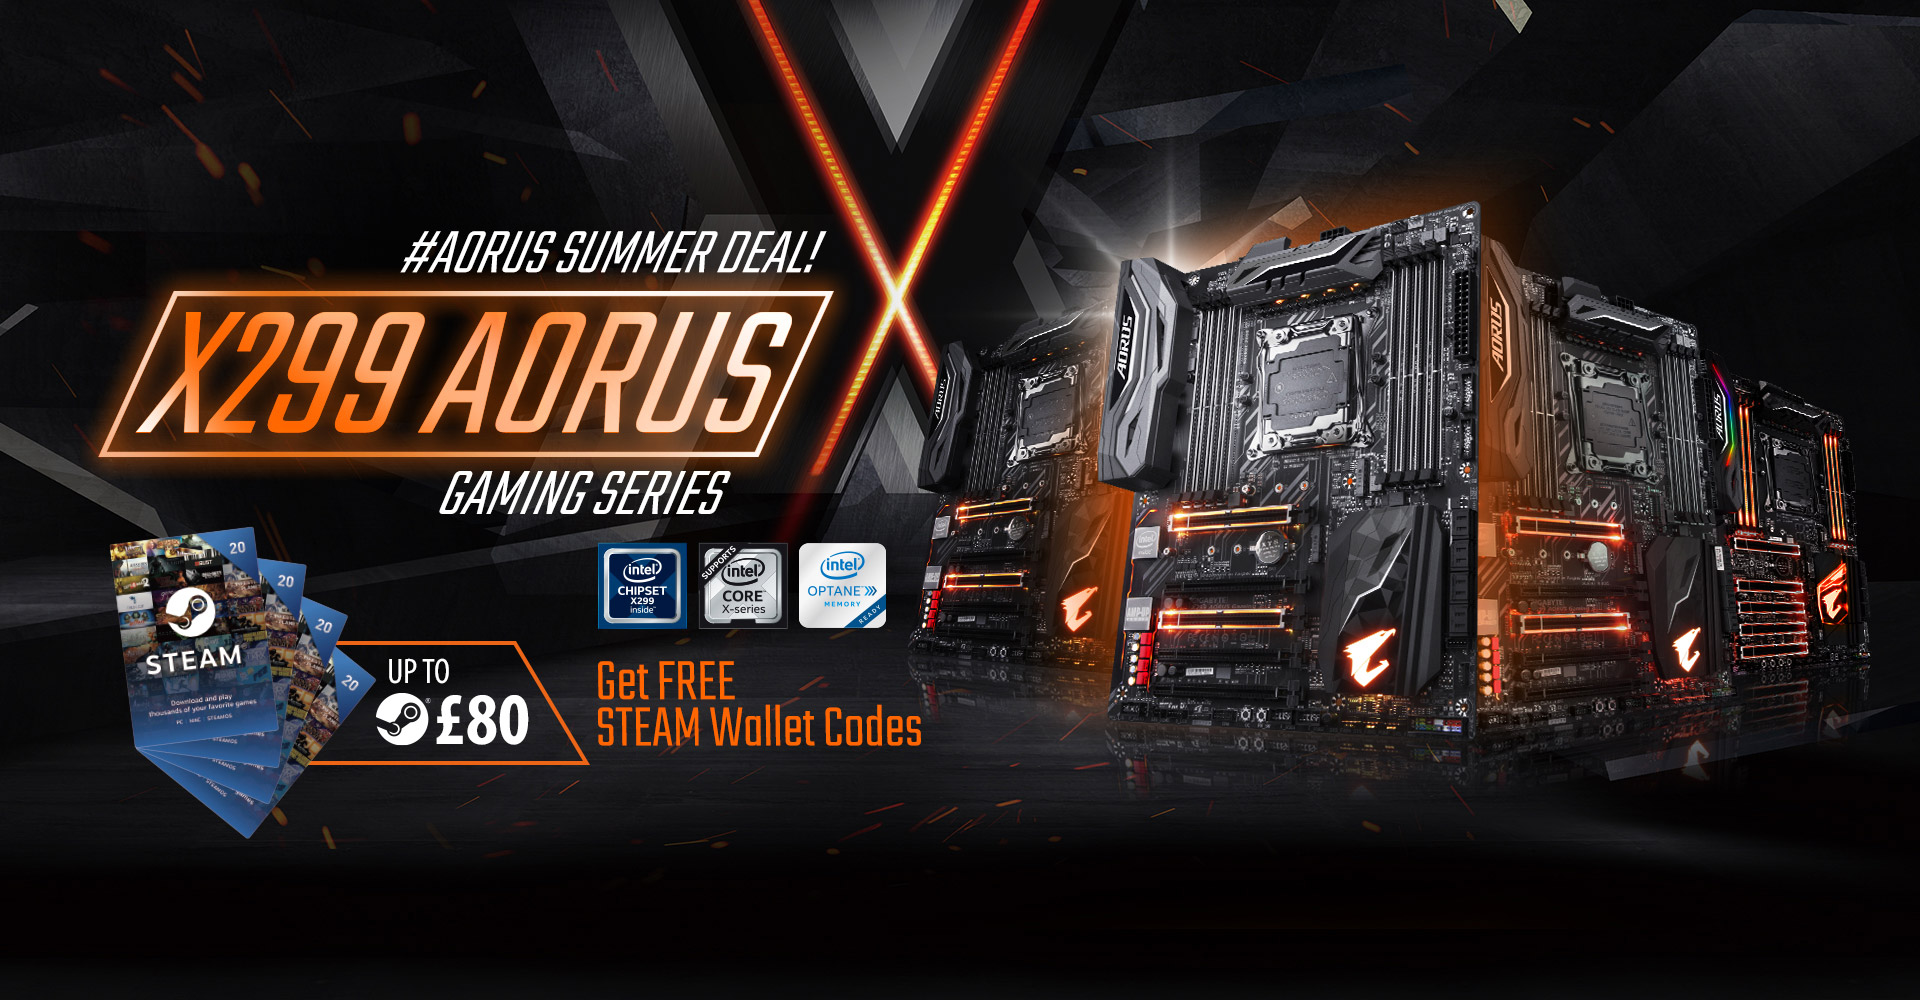 Buy GIGABYTE AORUS X299 and Get Up To £80 Steam Wallet Codes